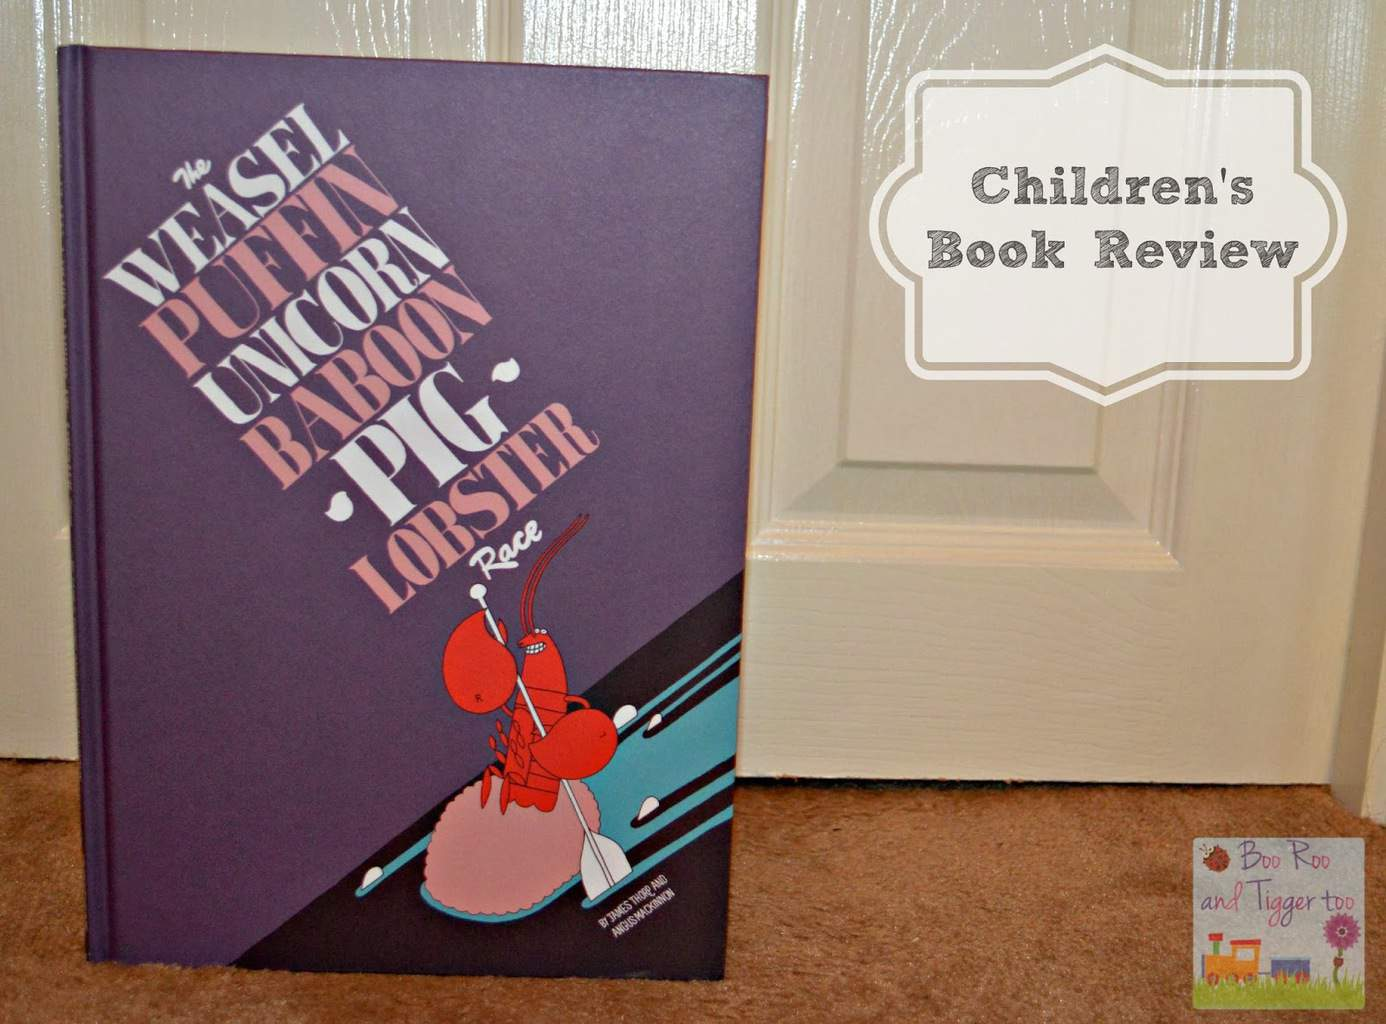 The Weasel Puffin Unicorn Baboon Pig Lobster Race Book Review